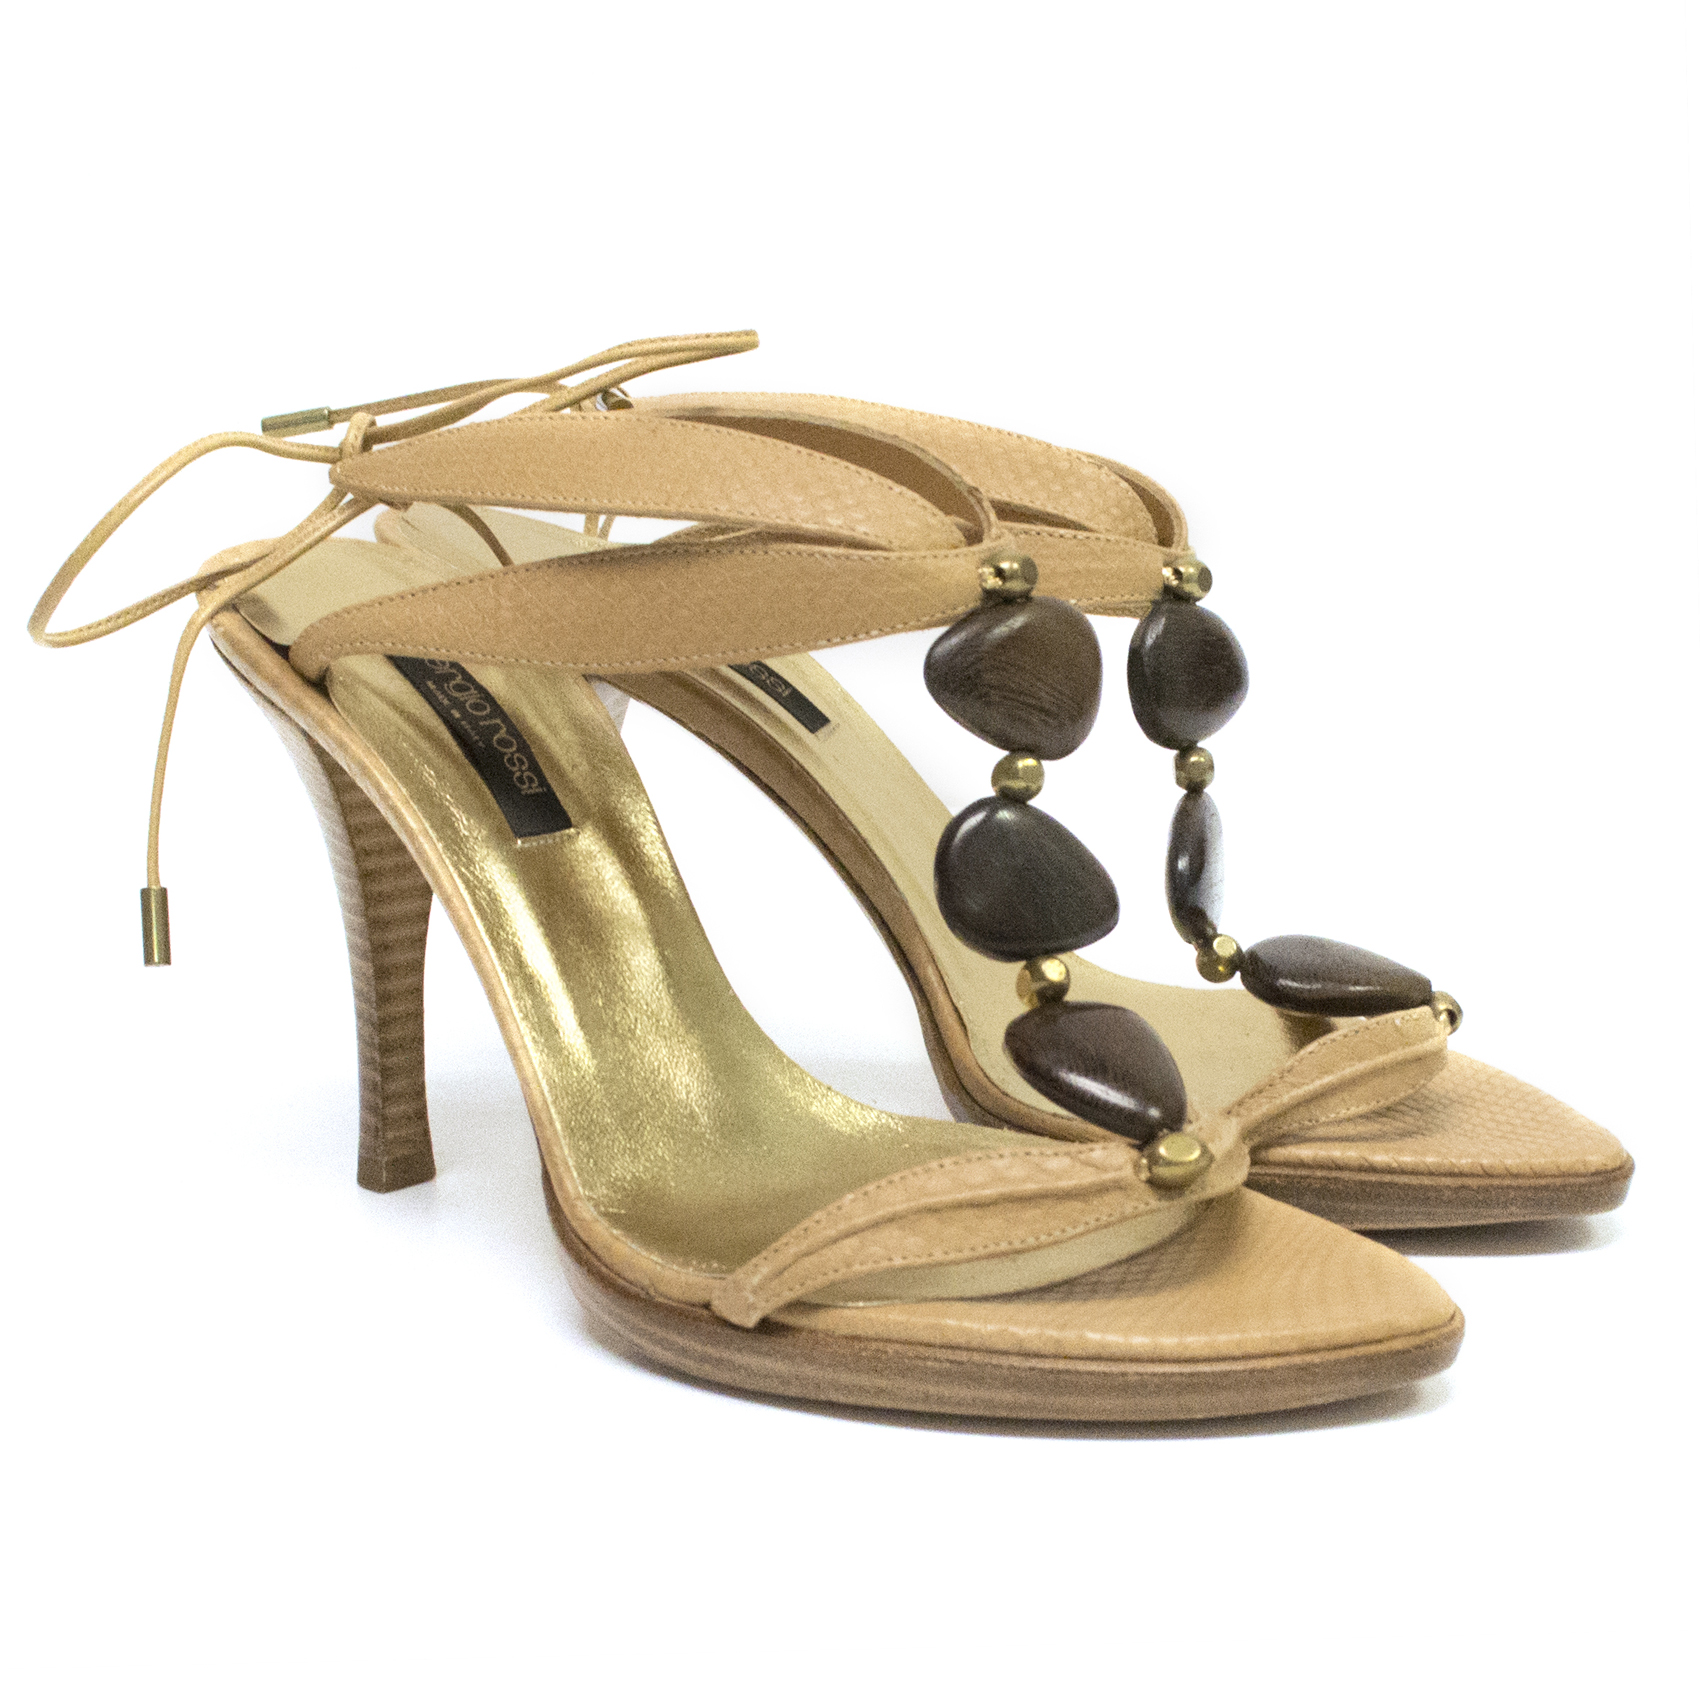 Sergio Rossi Leather and Wood Heeled Sandals